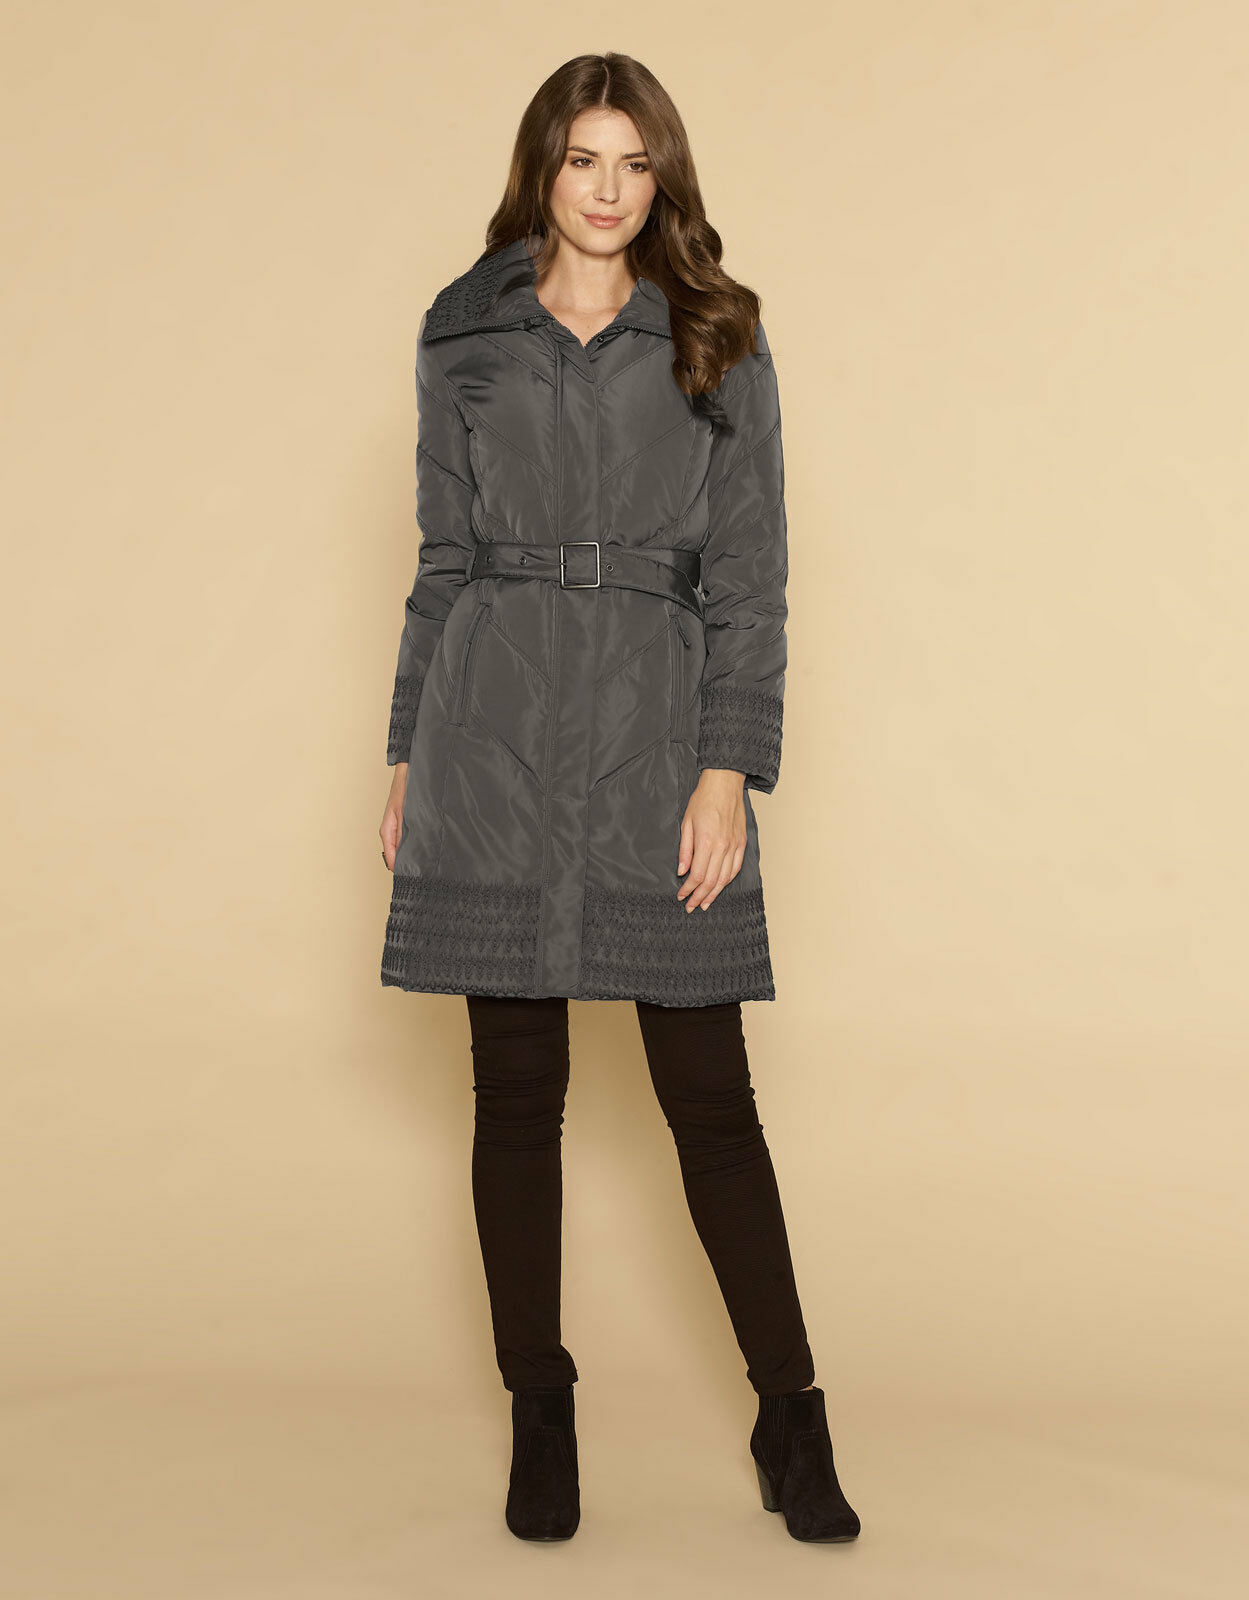 Monsoon Calista Embroidered Down and Feather Grey Coat ,UK Size ( S ) RRP-